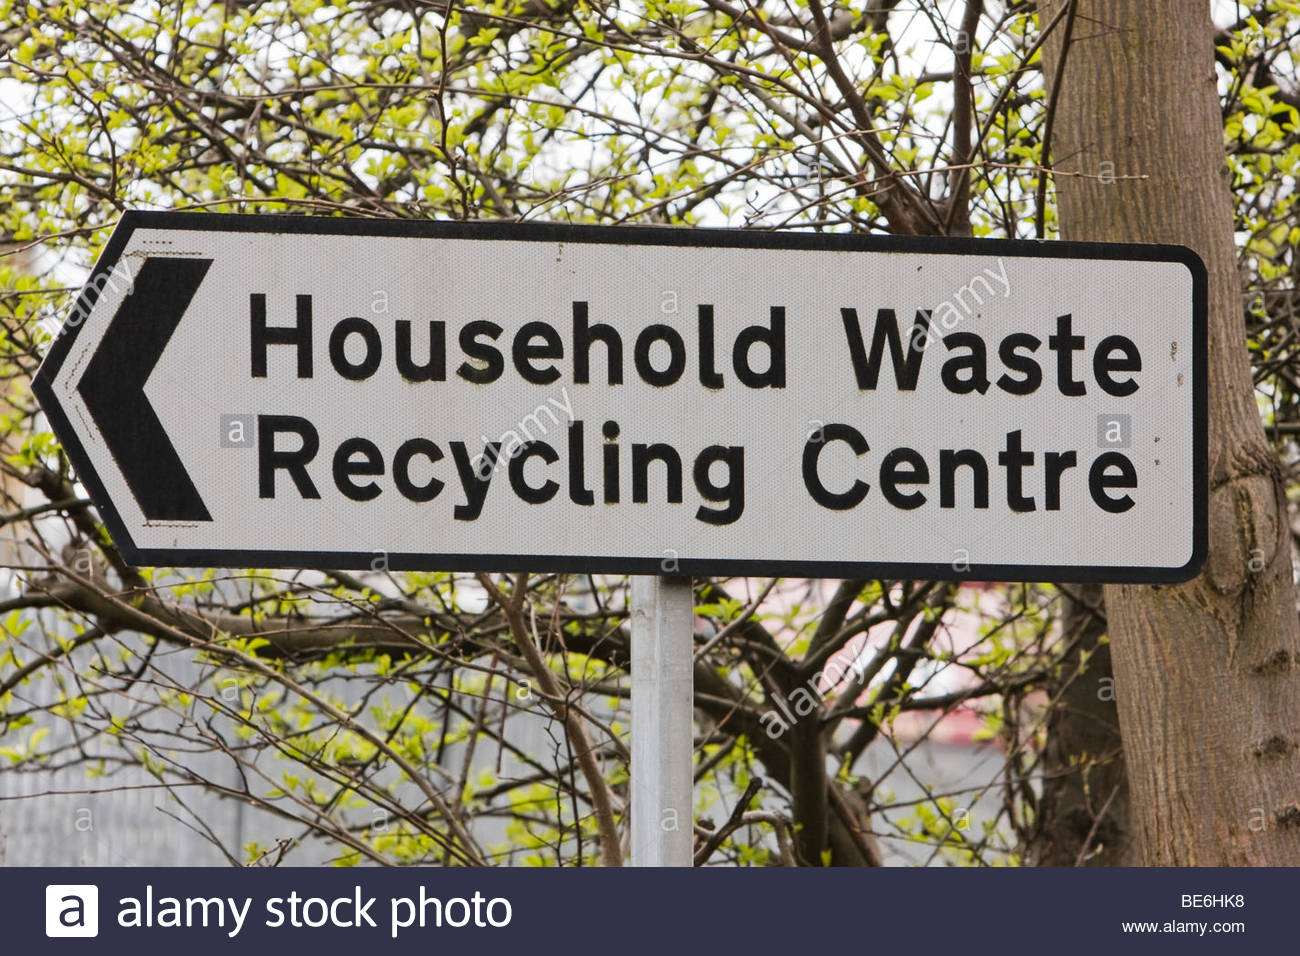 Black on white sign pointing towards a Household Waste Recycling Centre, with a tree in the background. - Stock Image